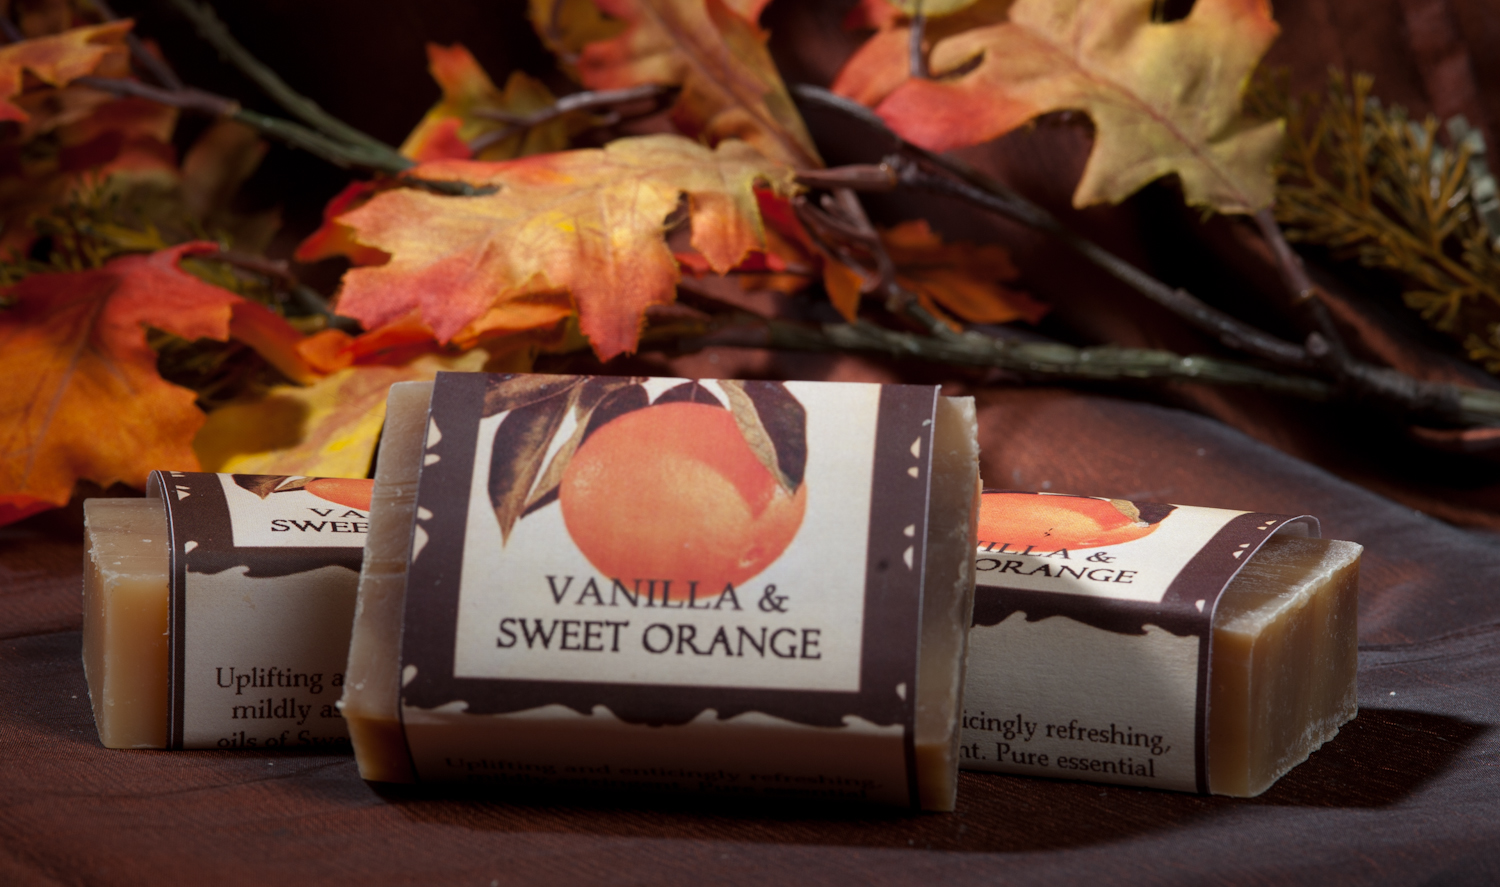 Vanilla & Sweet Orange Soap